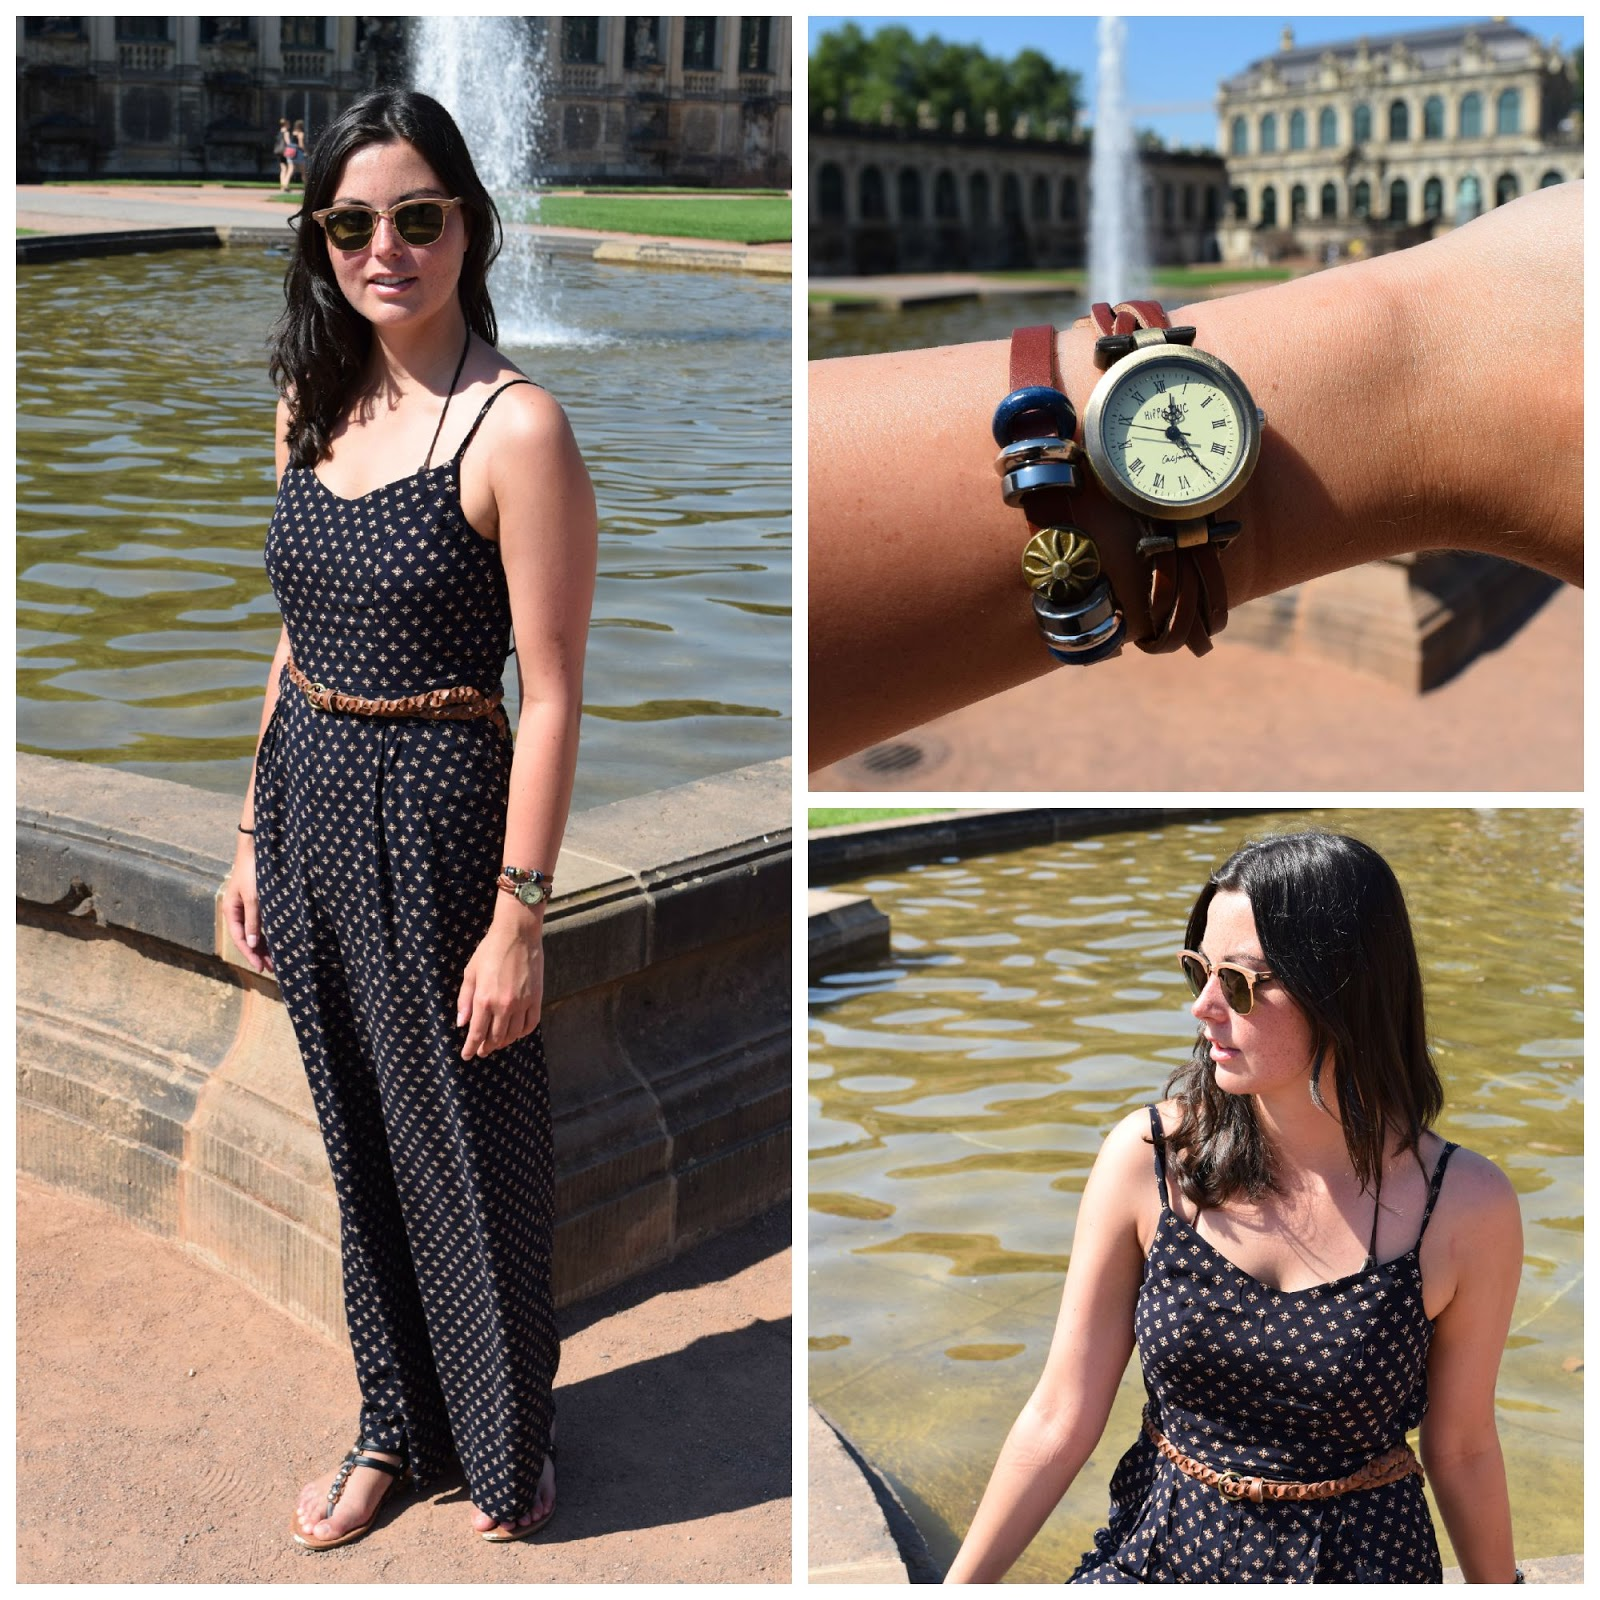 Dresden Summer Fashion post